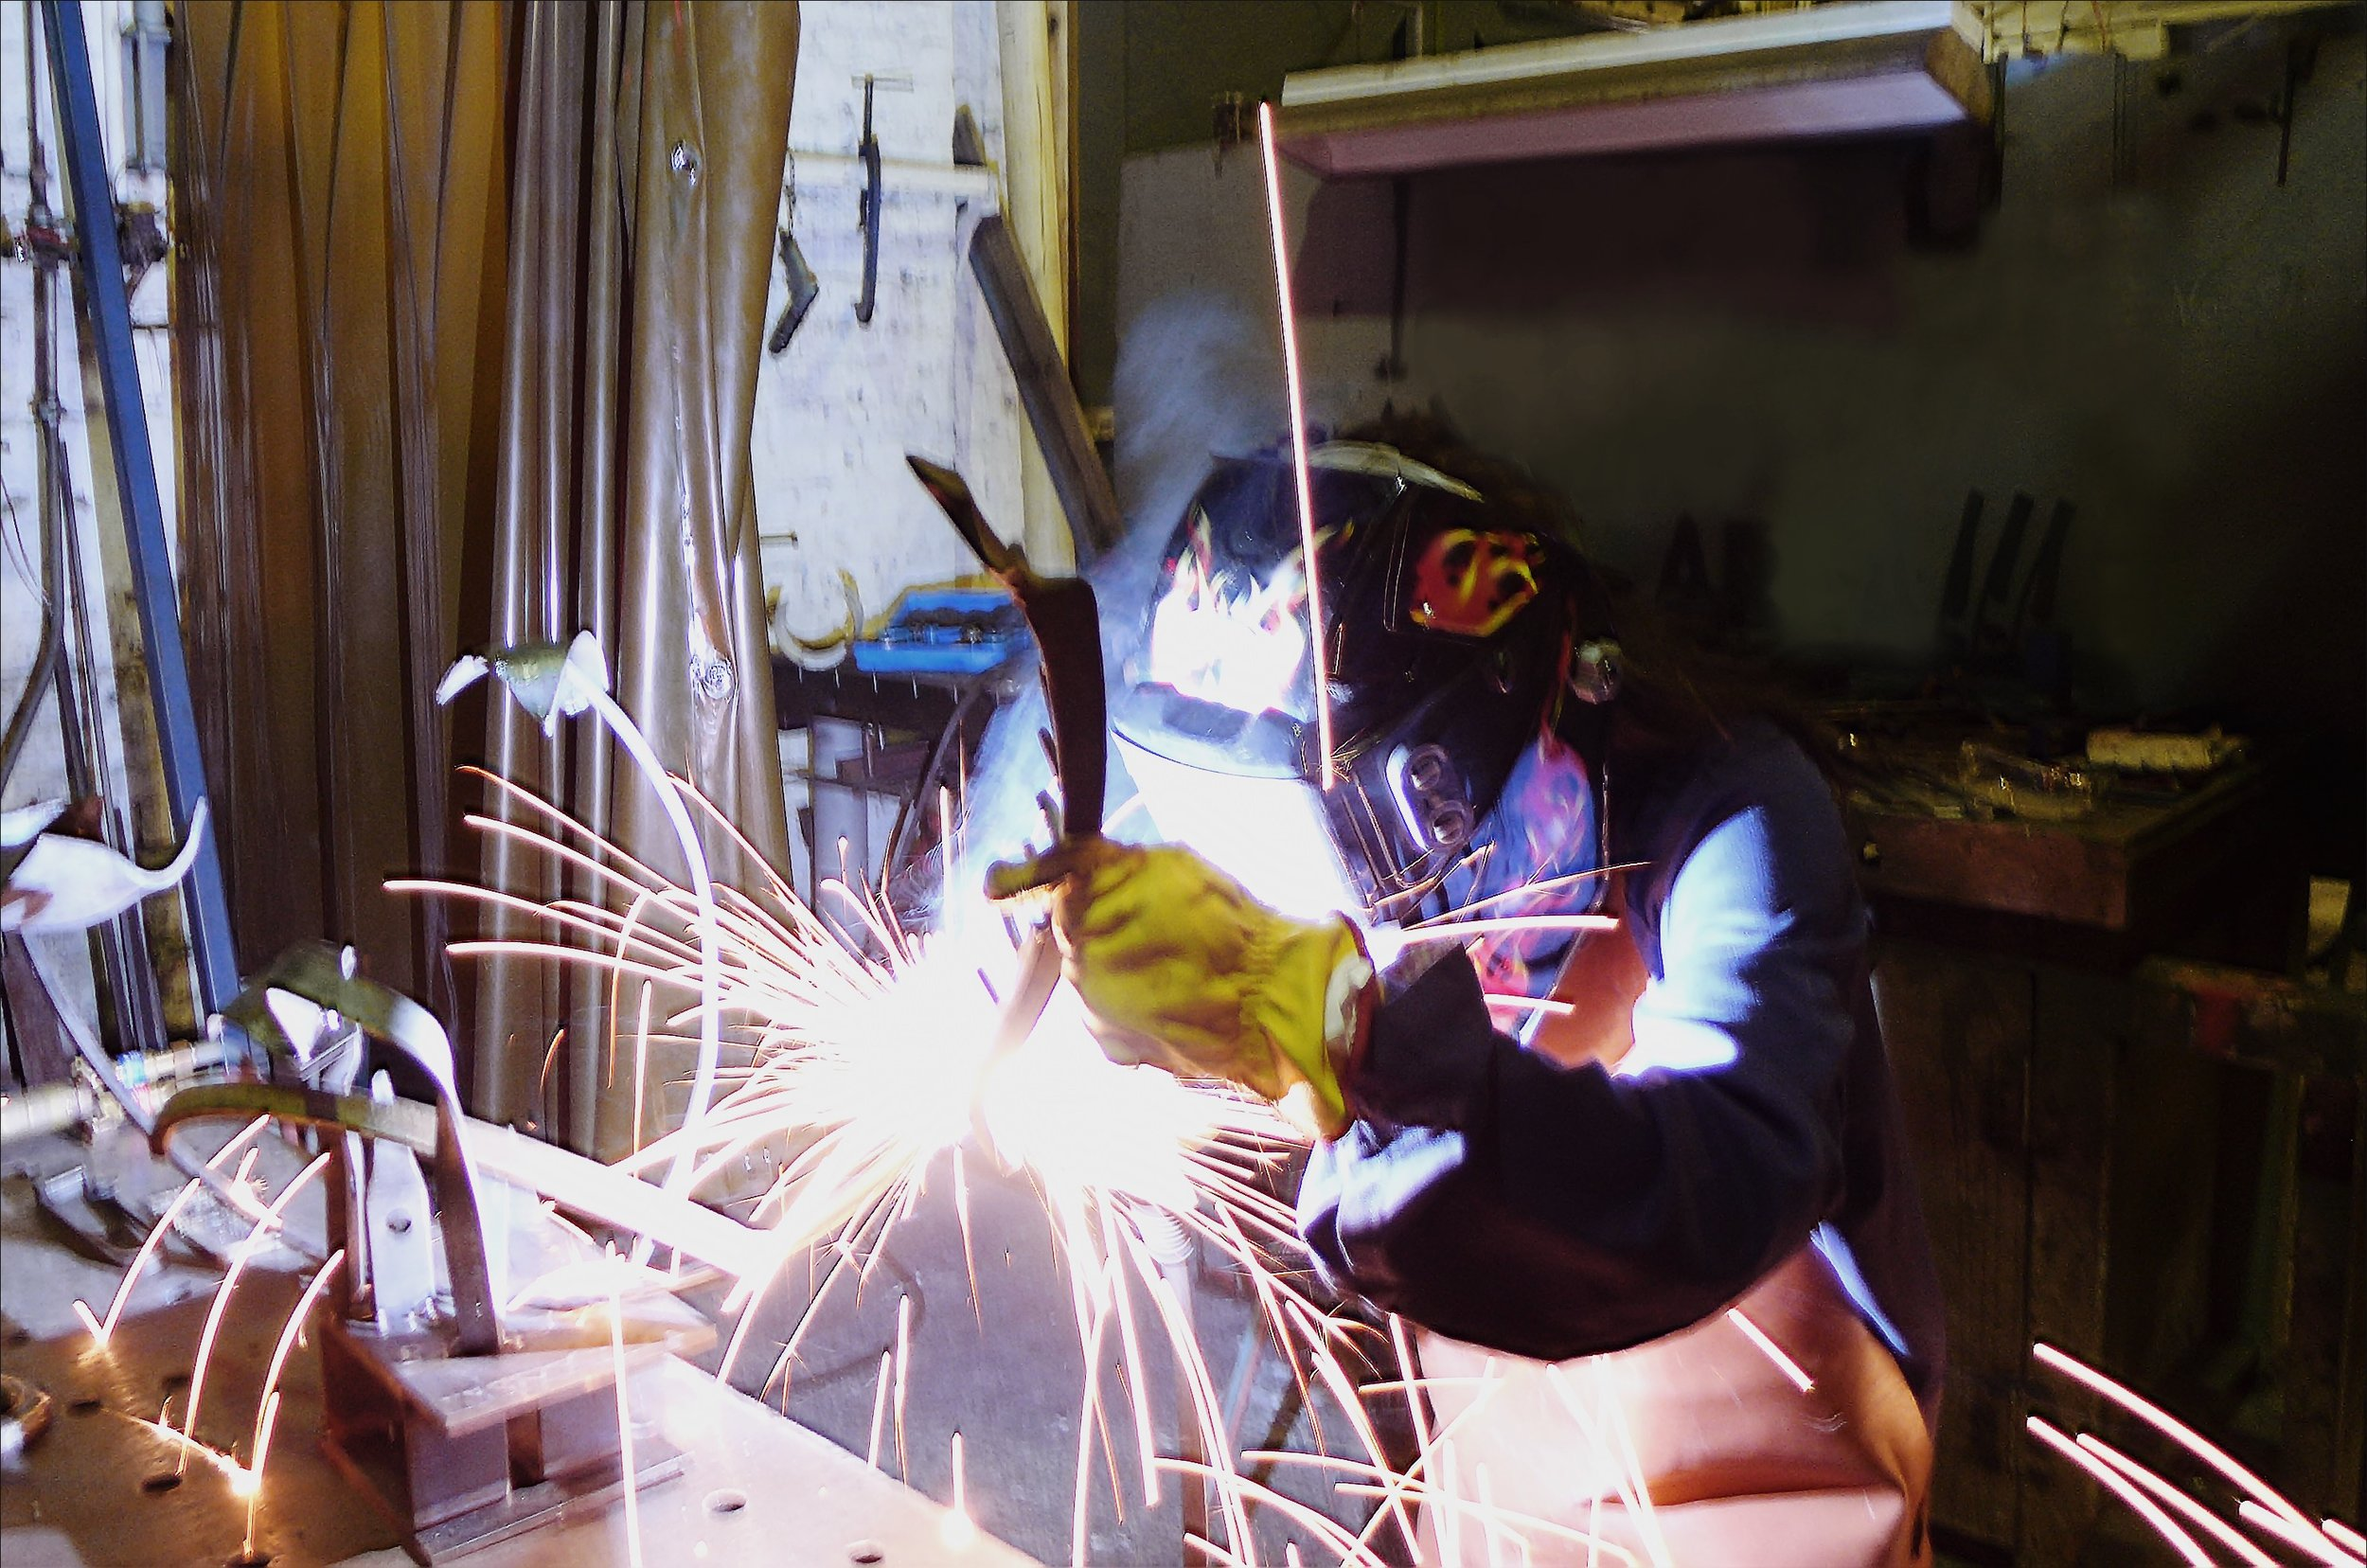 Welding a steel sculpture at the Metalwork for Sculpture course in Redfern